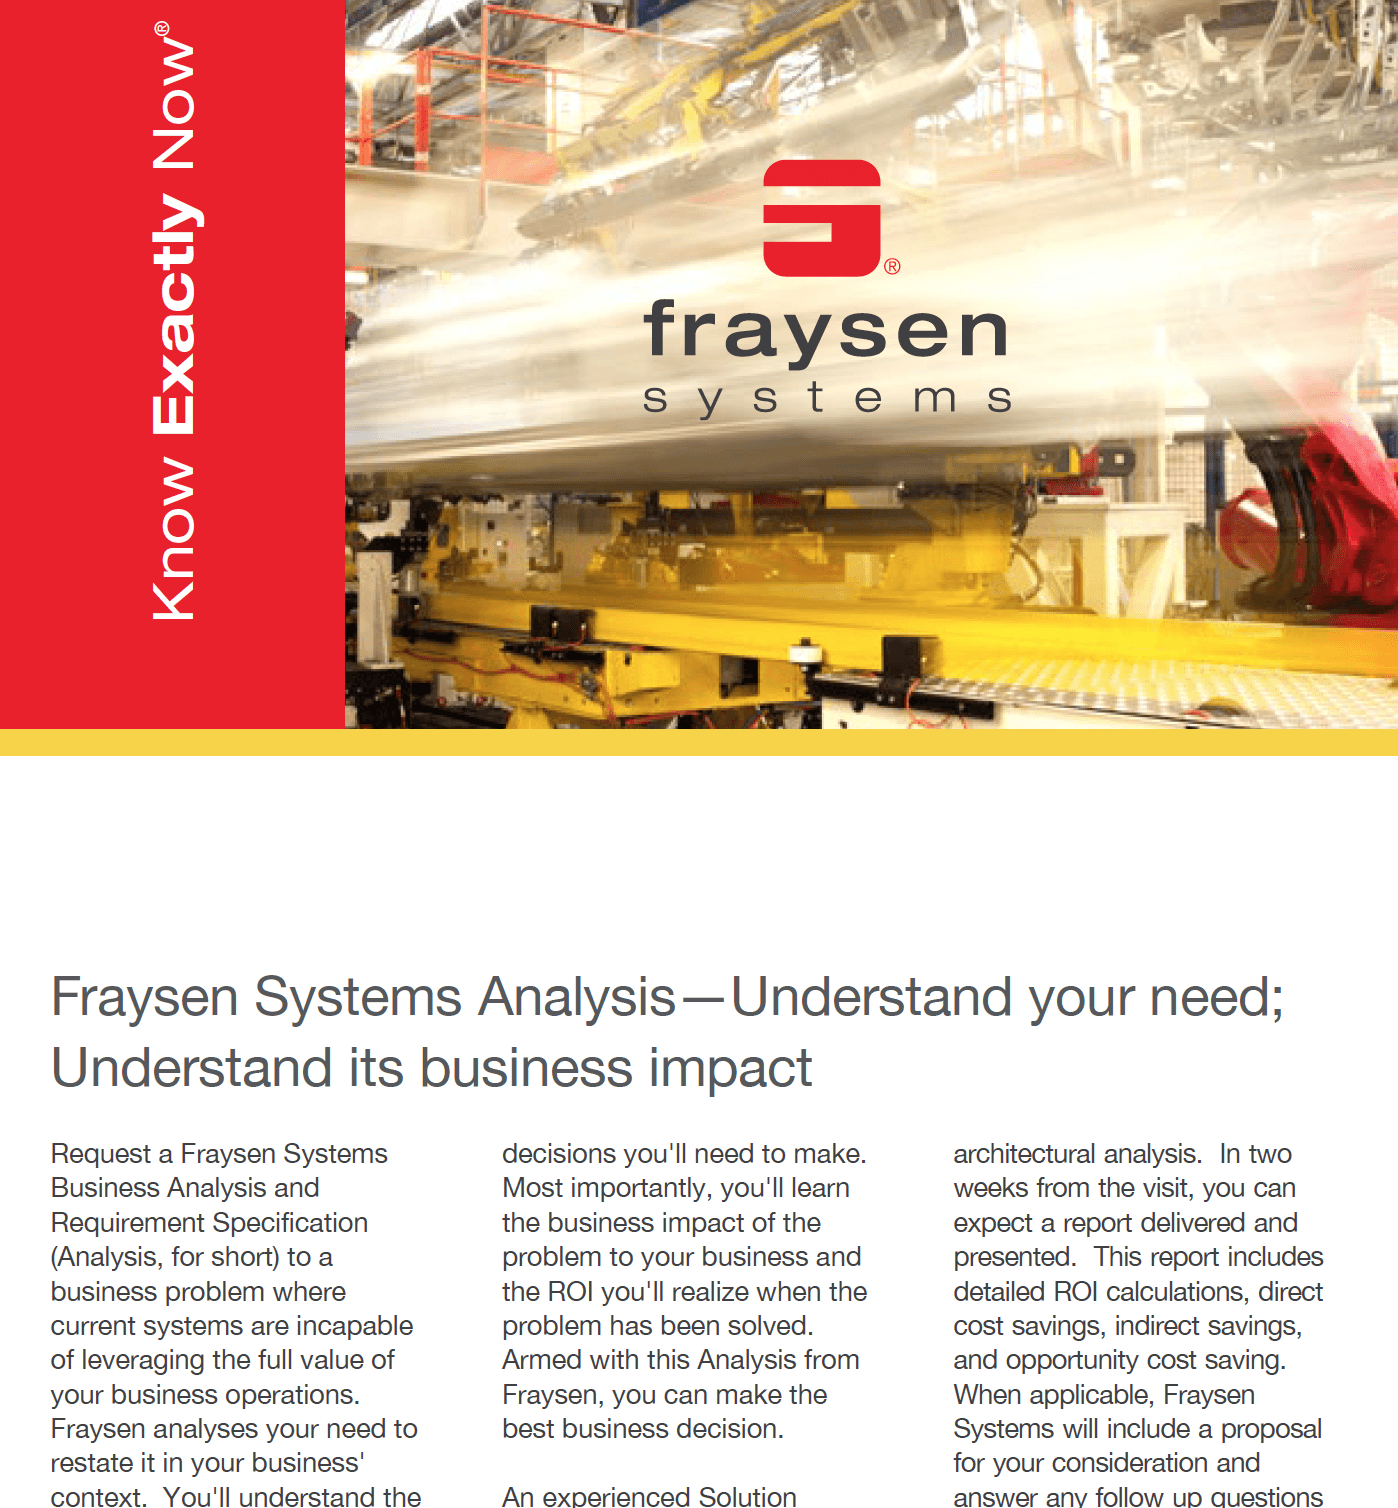 Fraysen Systems Analysis